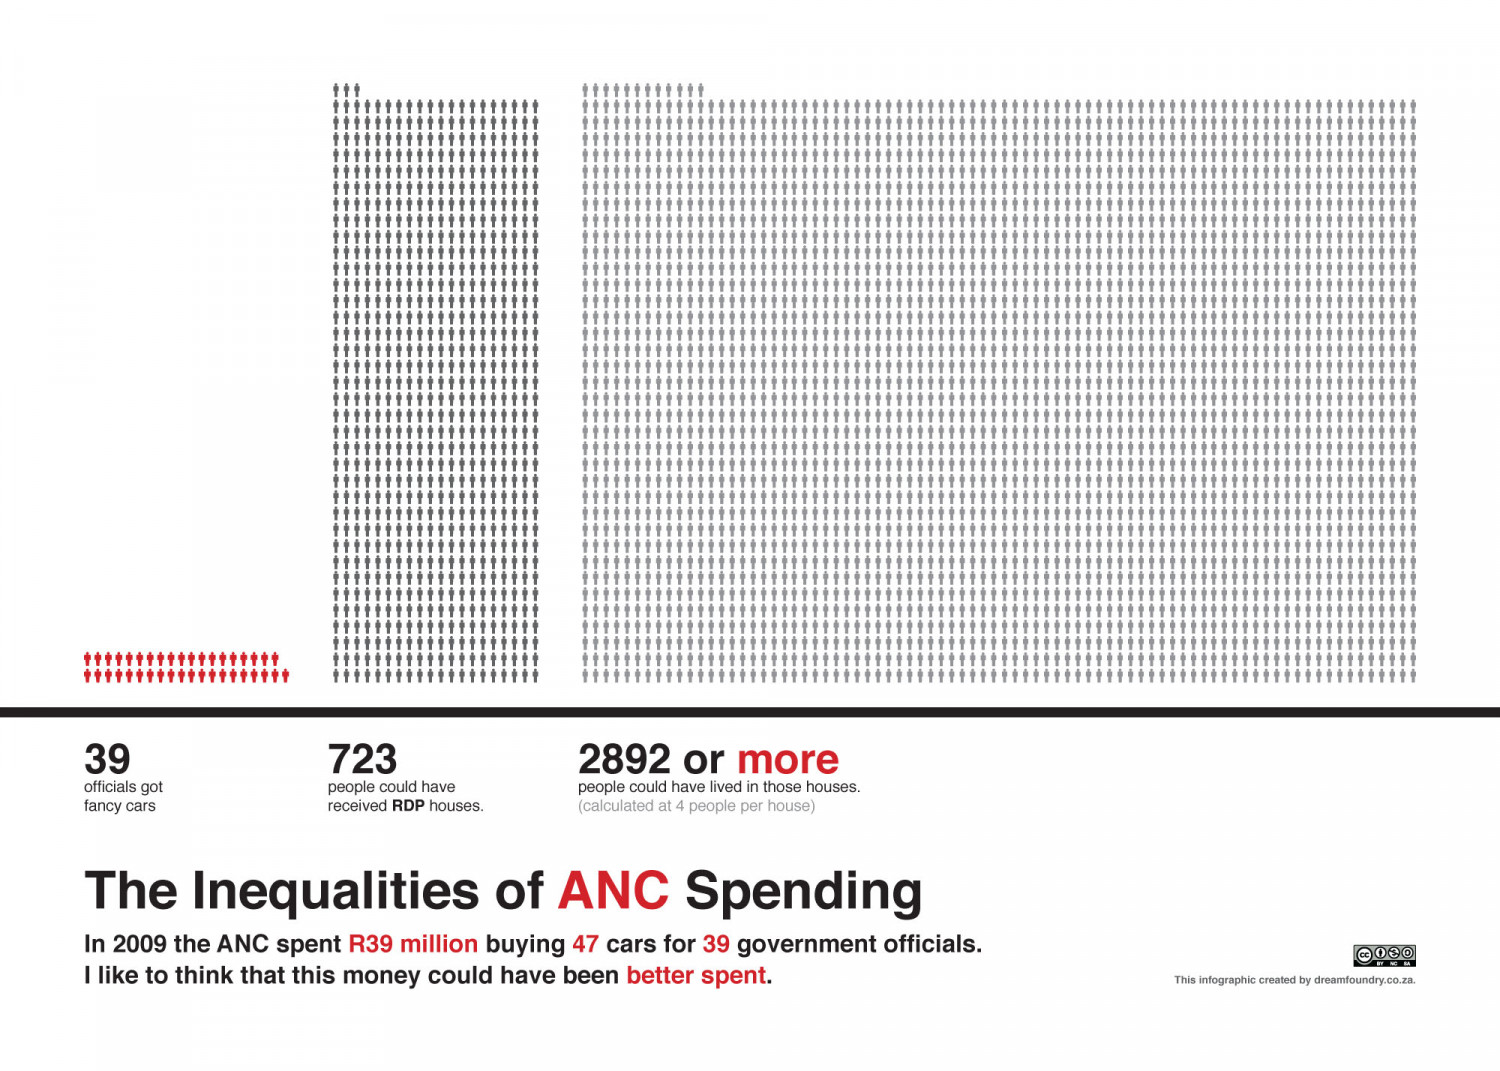 The Inequalities of ANC Spending Infographic